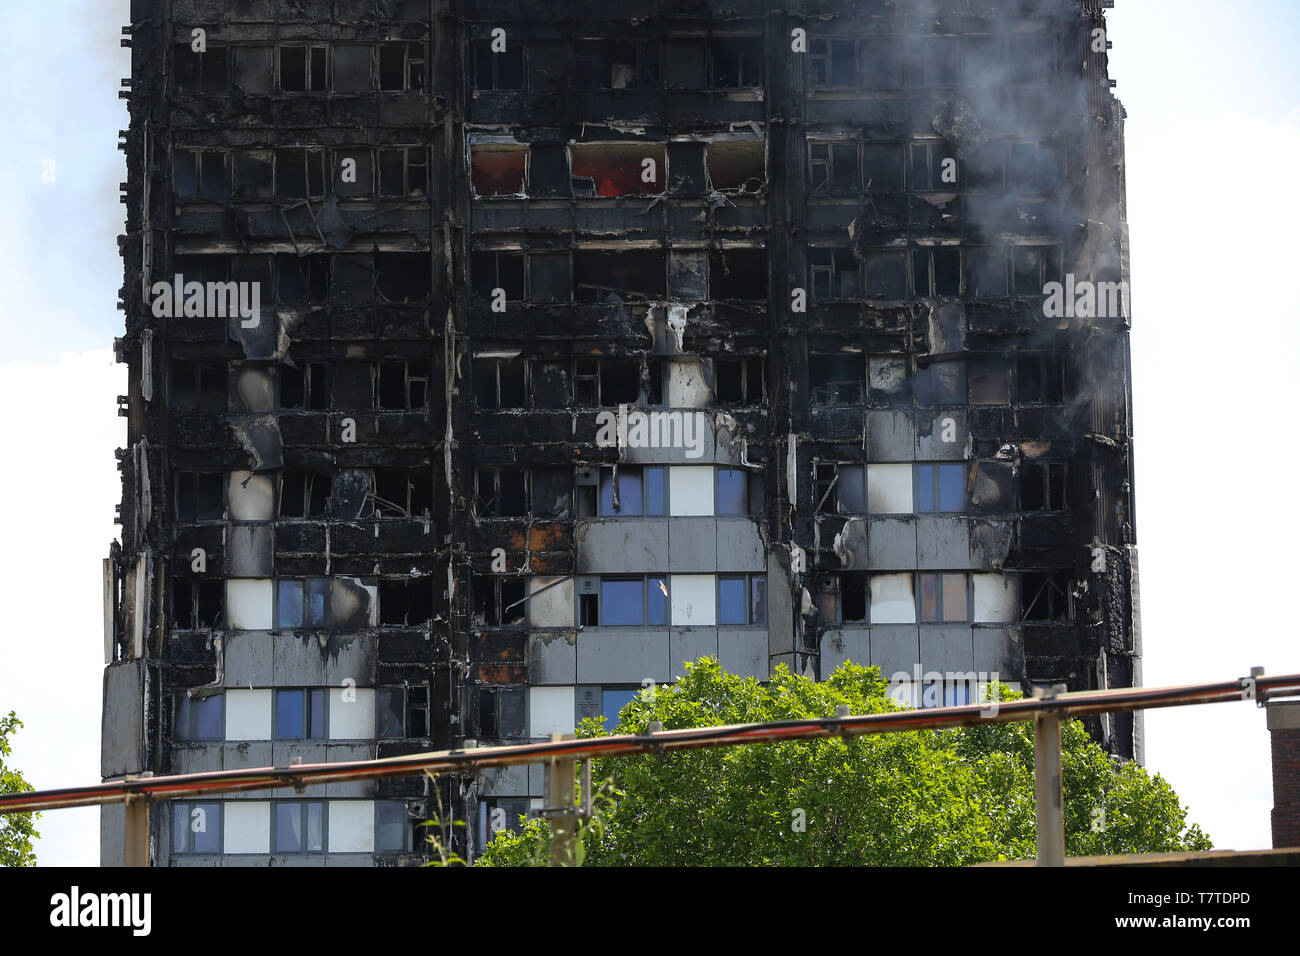 June 14, 2017 - London, United Kingdom - 24-storey Grenfell Tower block of flats seen on fire in North Kensington, West London..On 14 June 2017, a fire broke out in the 24-storey Grenfell Tower block of flats in North Kensington, West London where 72 people died, more than 70 others were injured and 223 people escaped..The UK Government is to fund an estimated £200 million to replacement of unsafe Grenfell style cladding on around 170 high-rise private residential buildings after private building owners failed to take action. Communities Secretary James Brokenshire said inaction from building - Stock Image